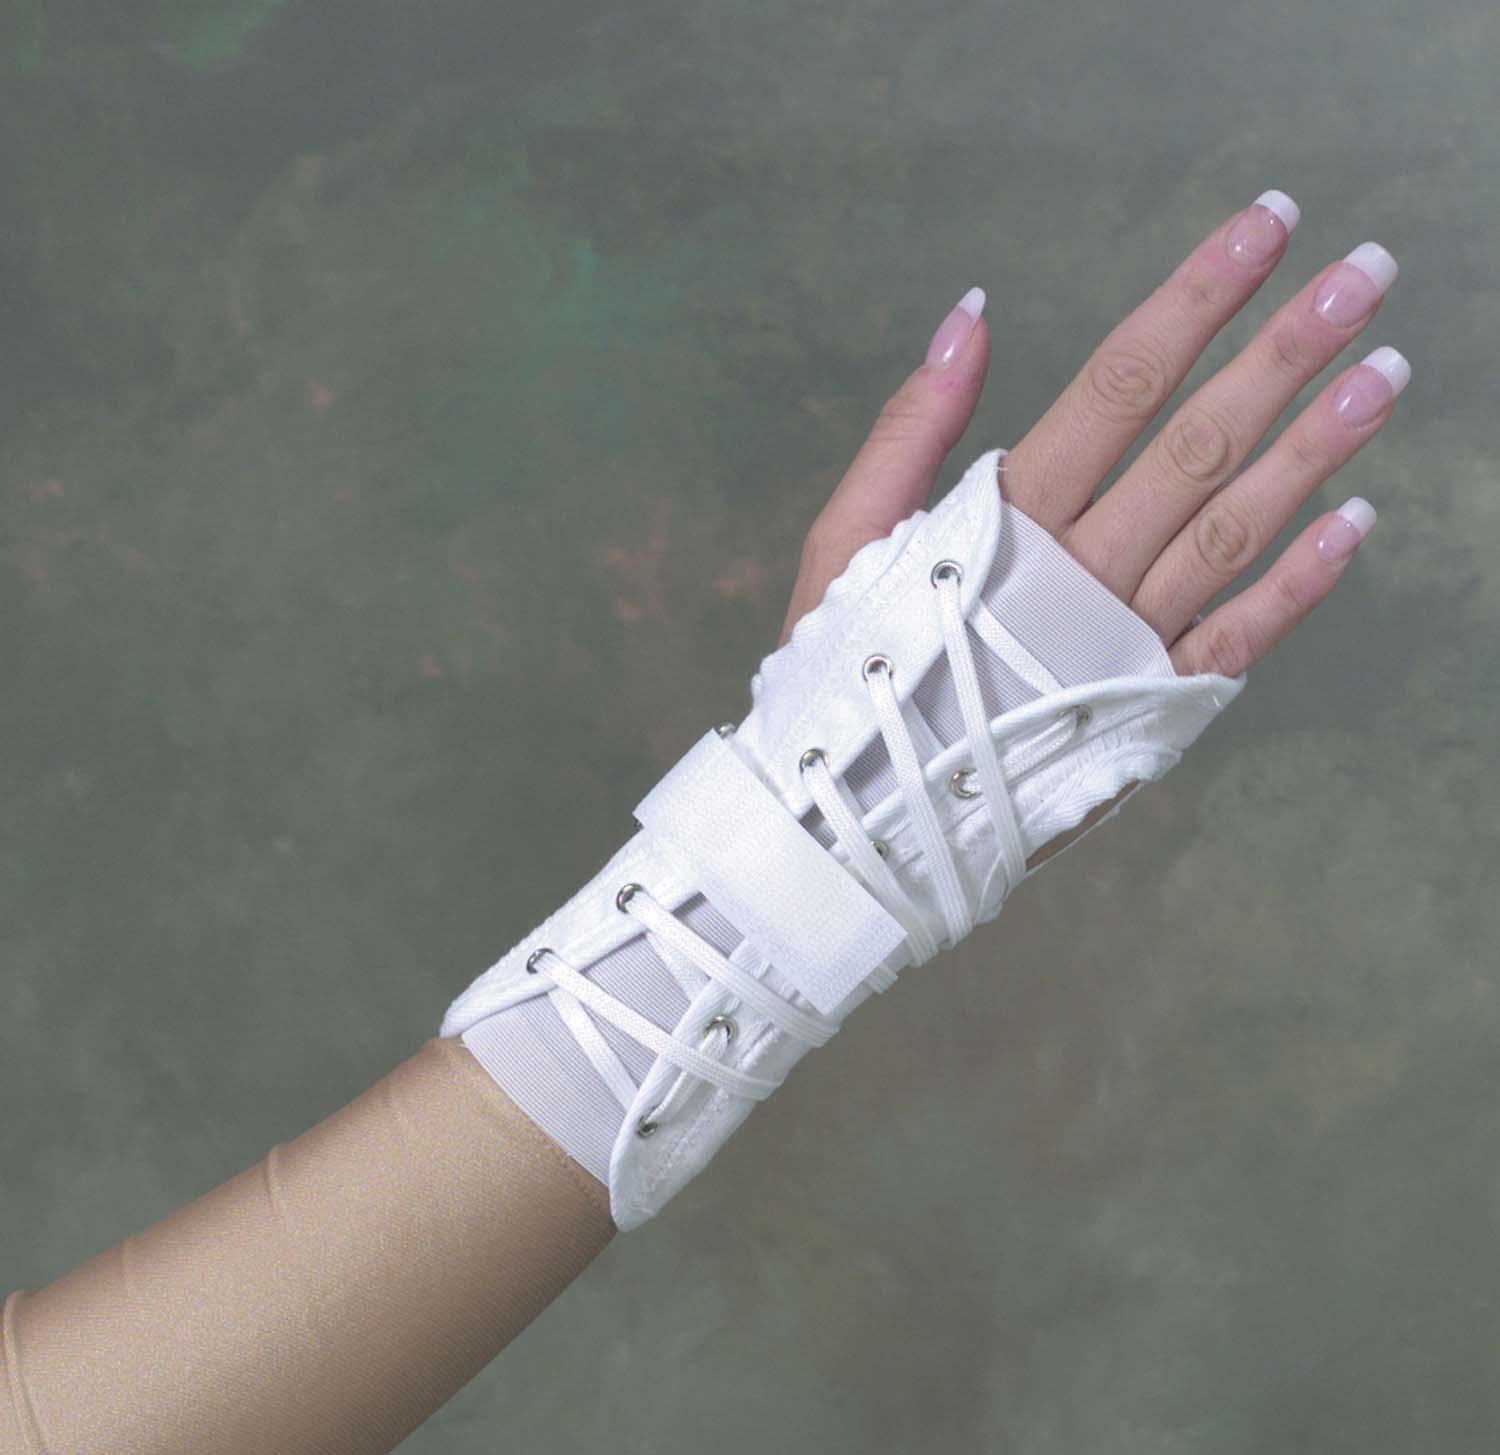 wrist-brace-cock-up-splint-large-633-6514-1923-lr-2.jpg